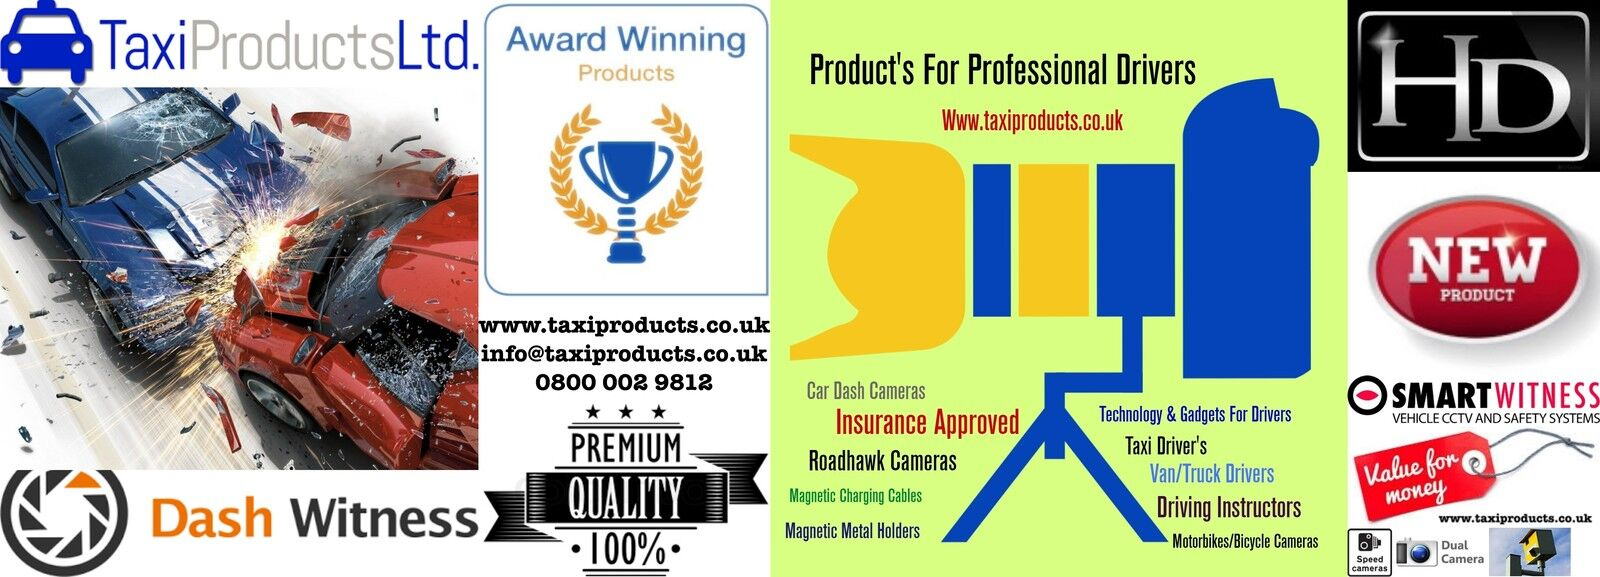 taxi-products